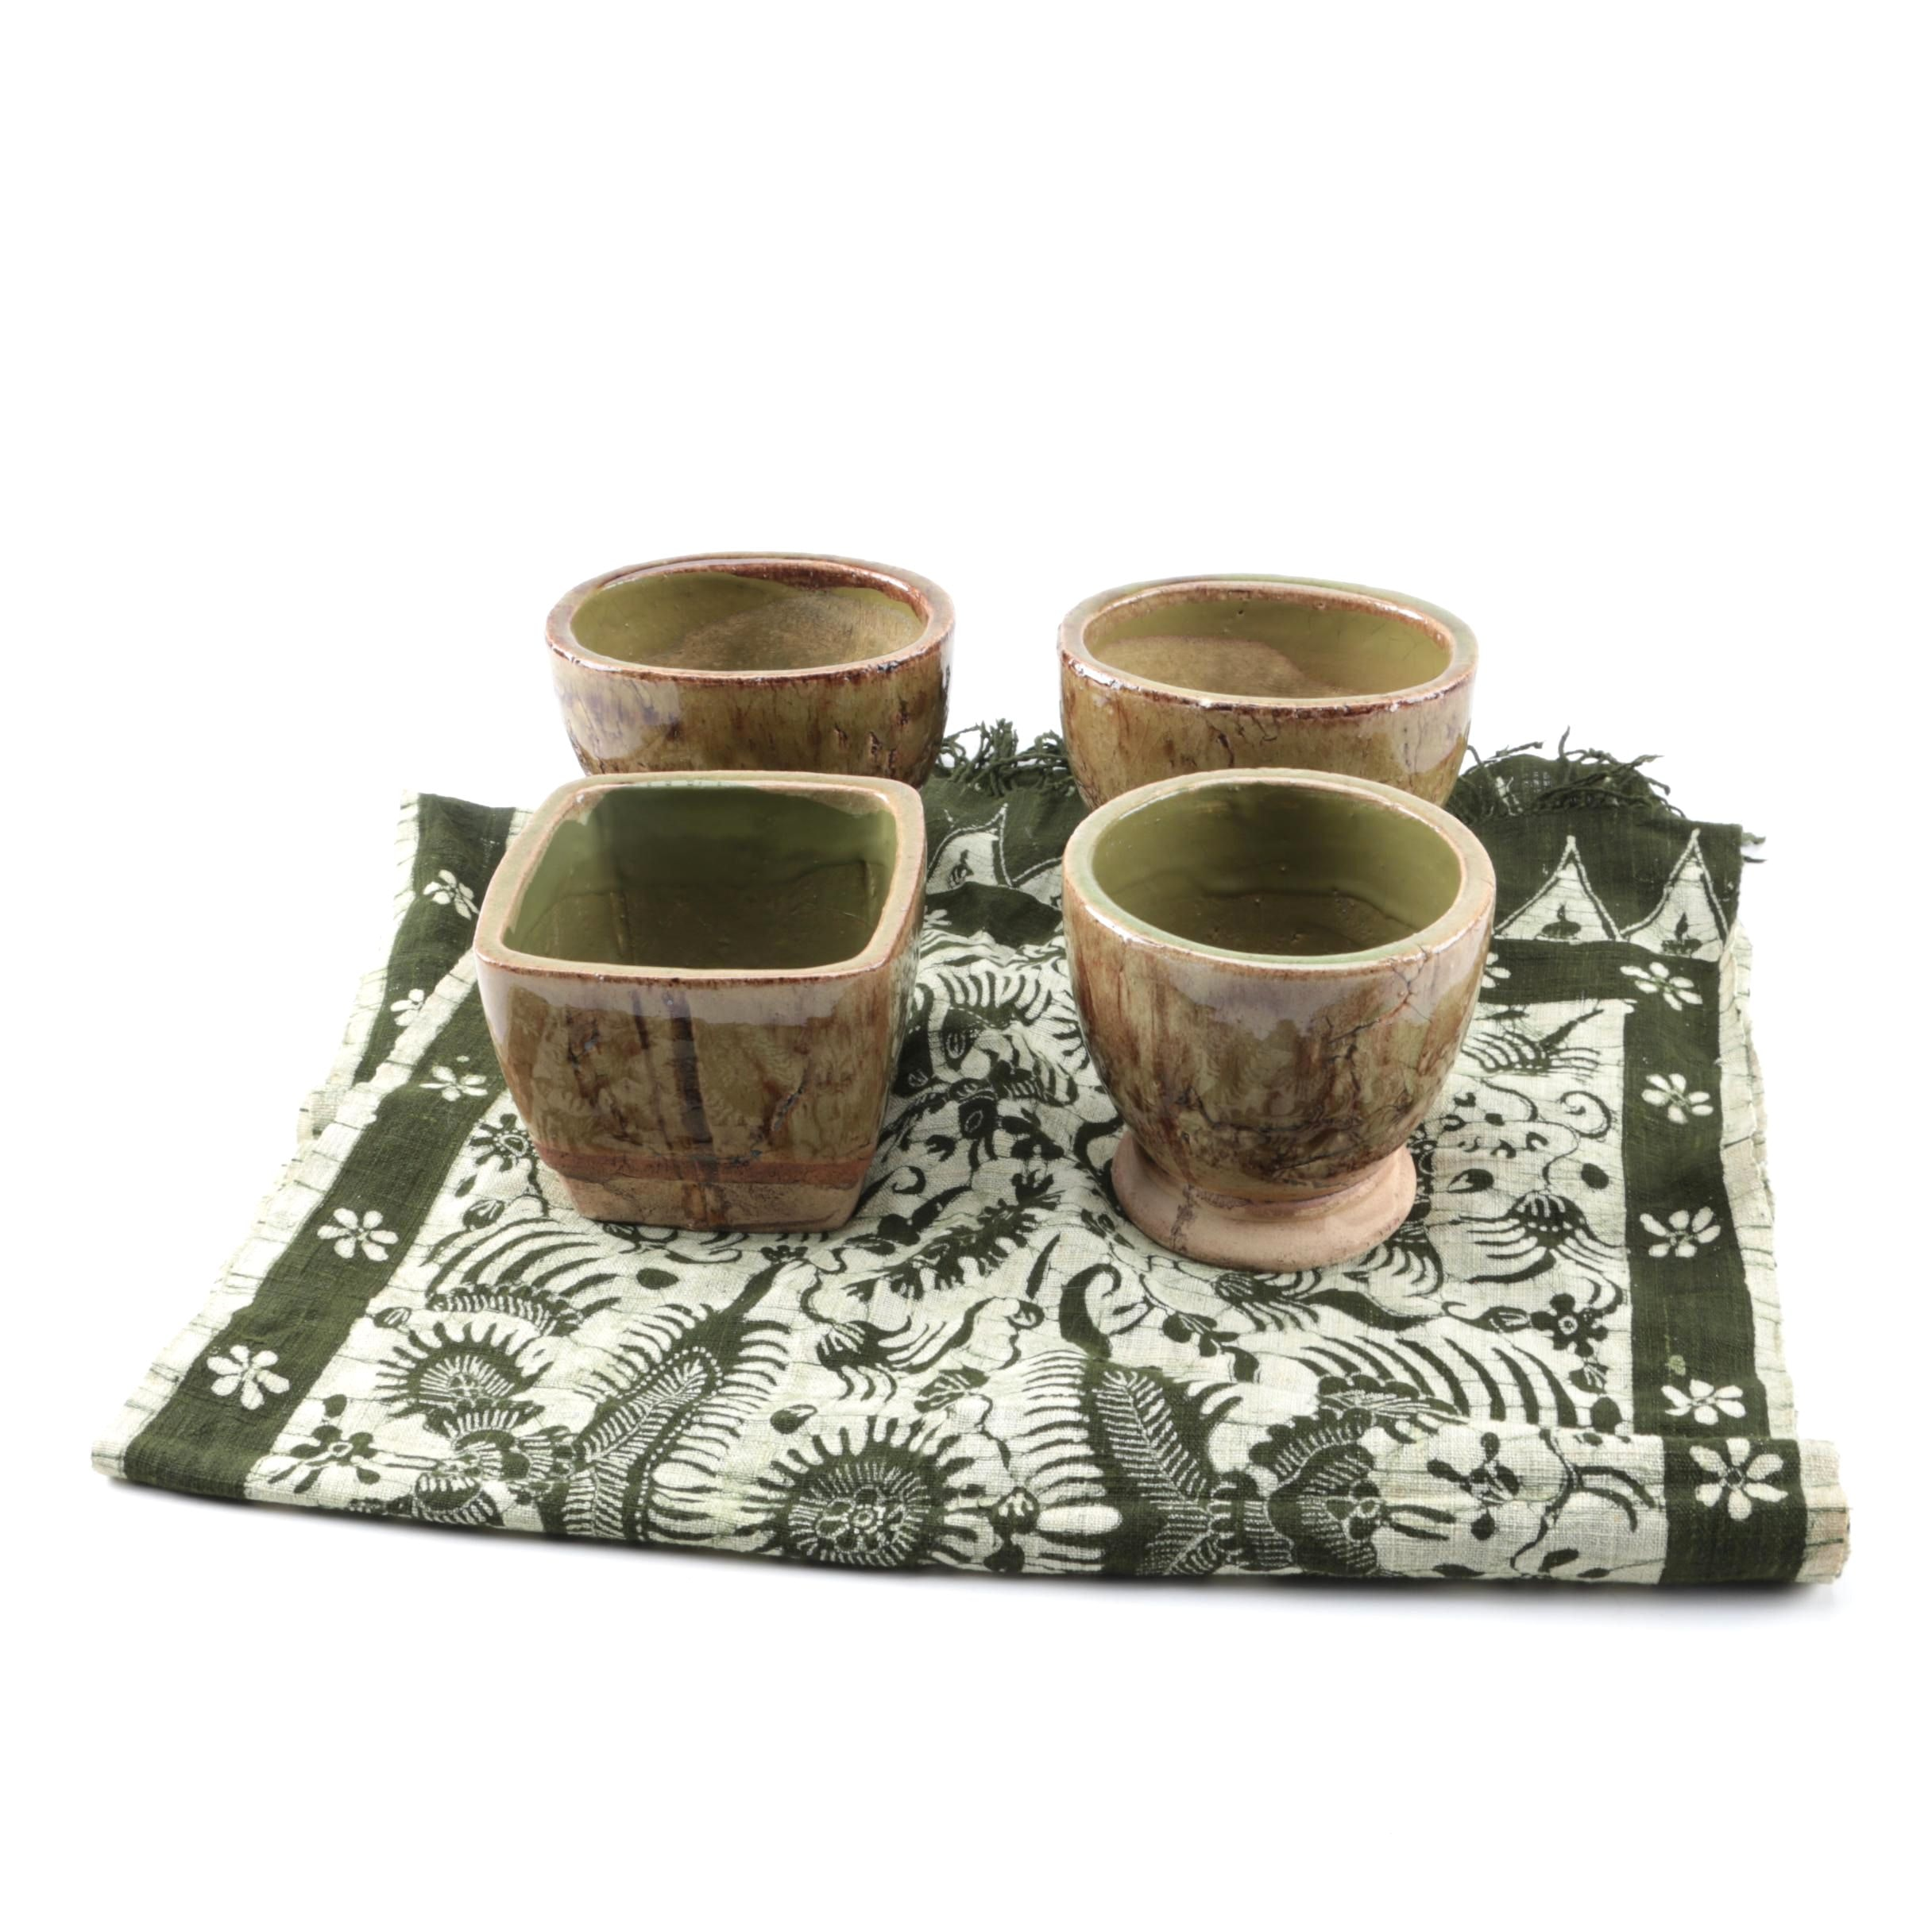 Table Runner and Decorative Ceramic Vessels